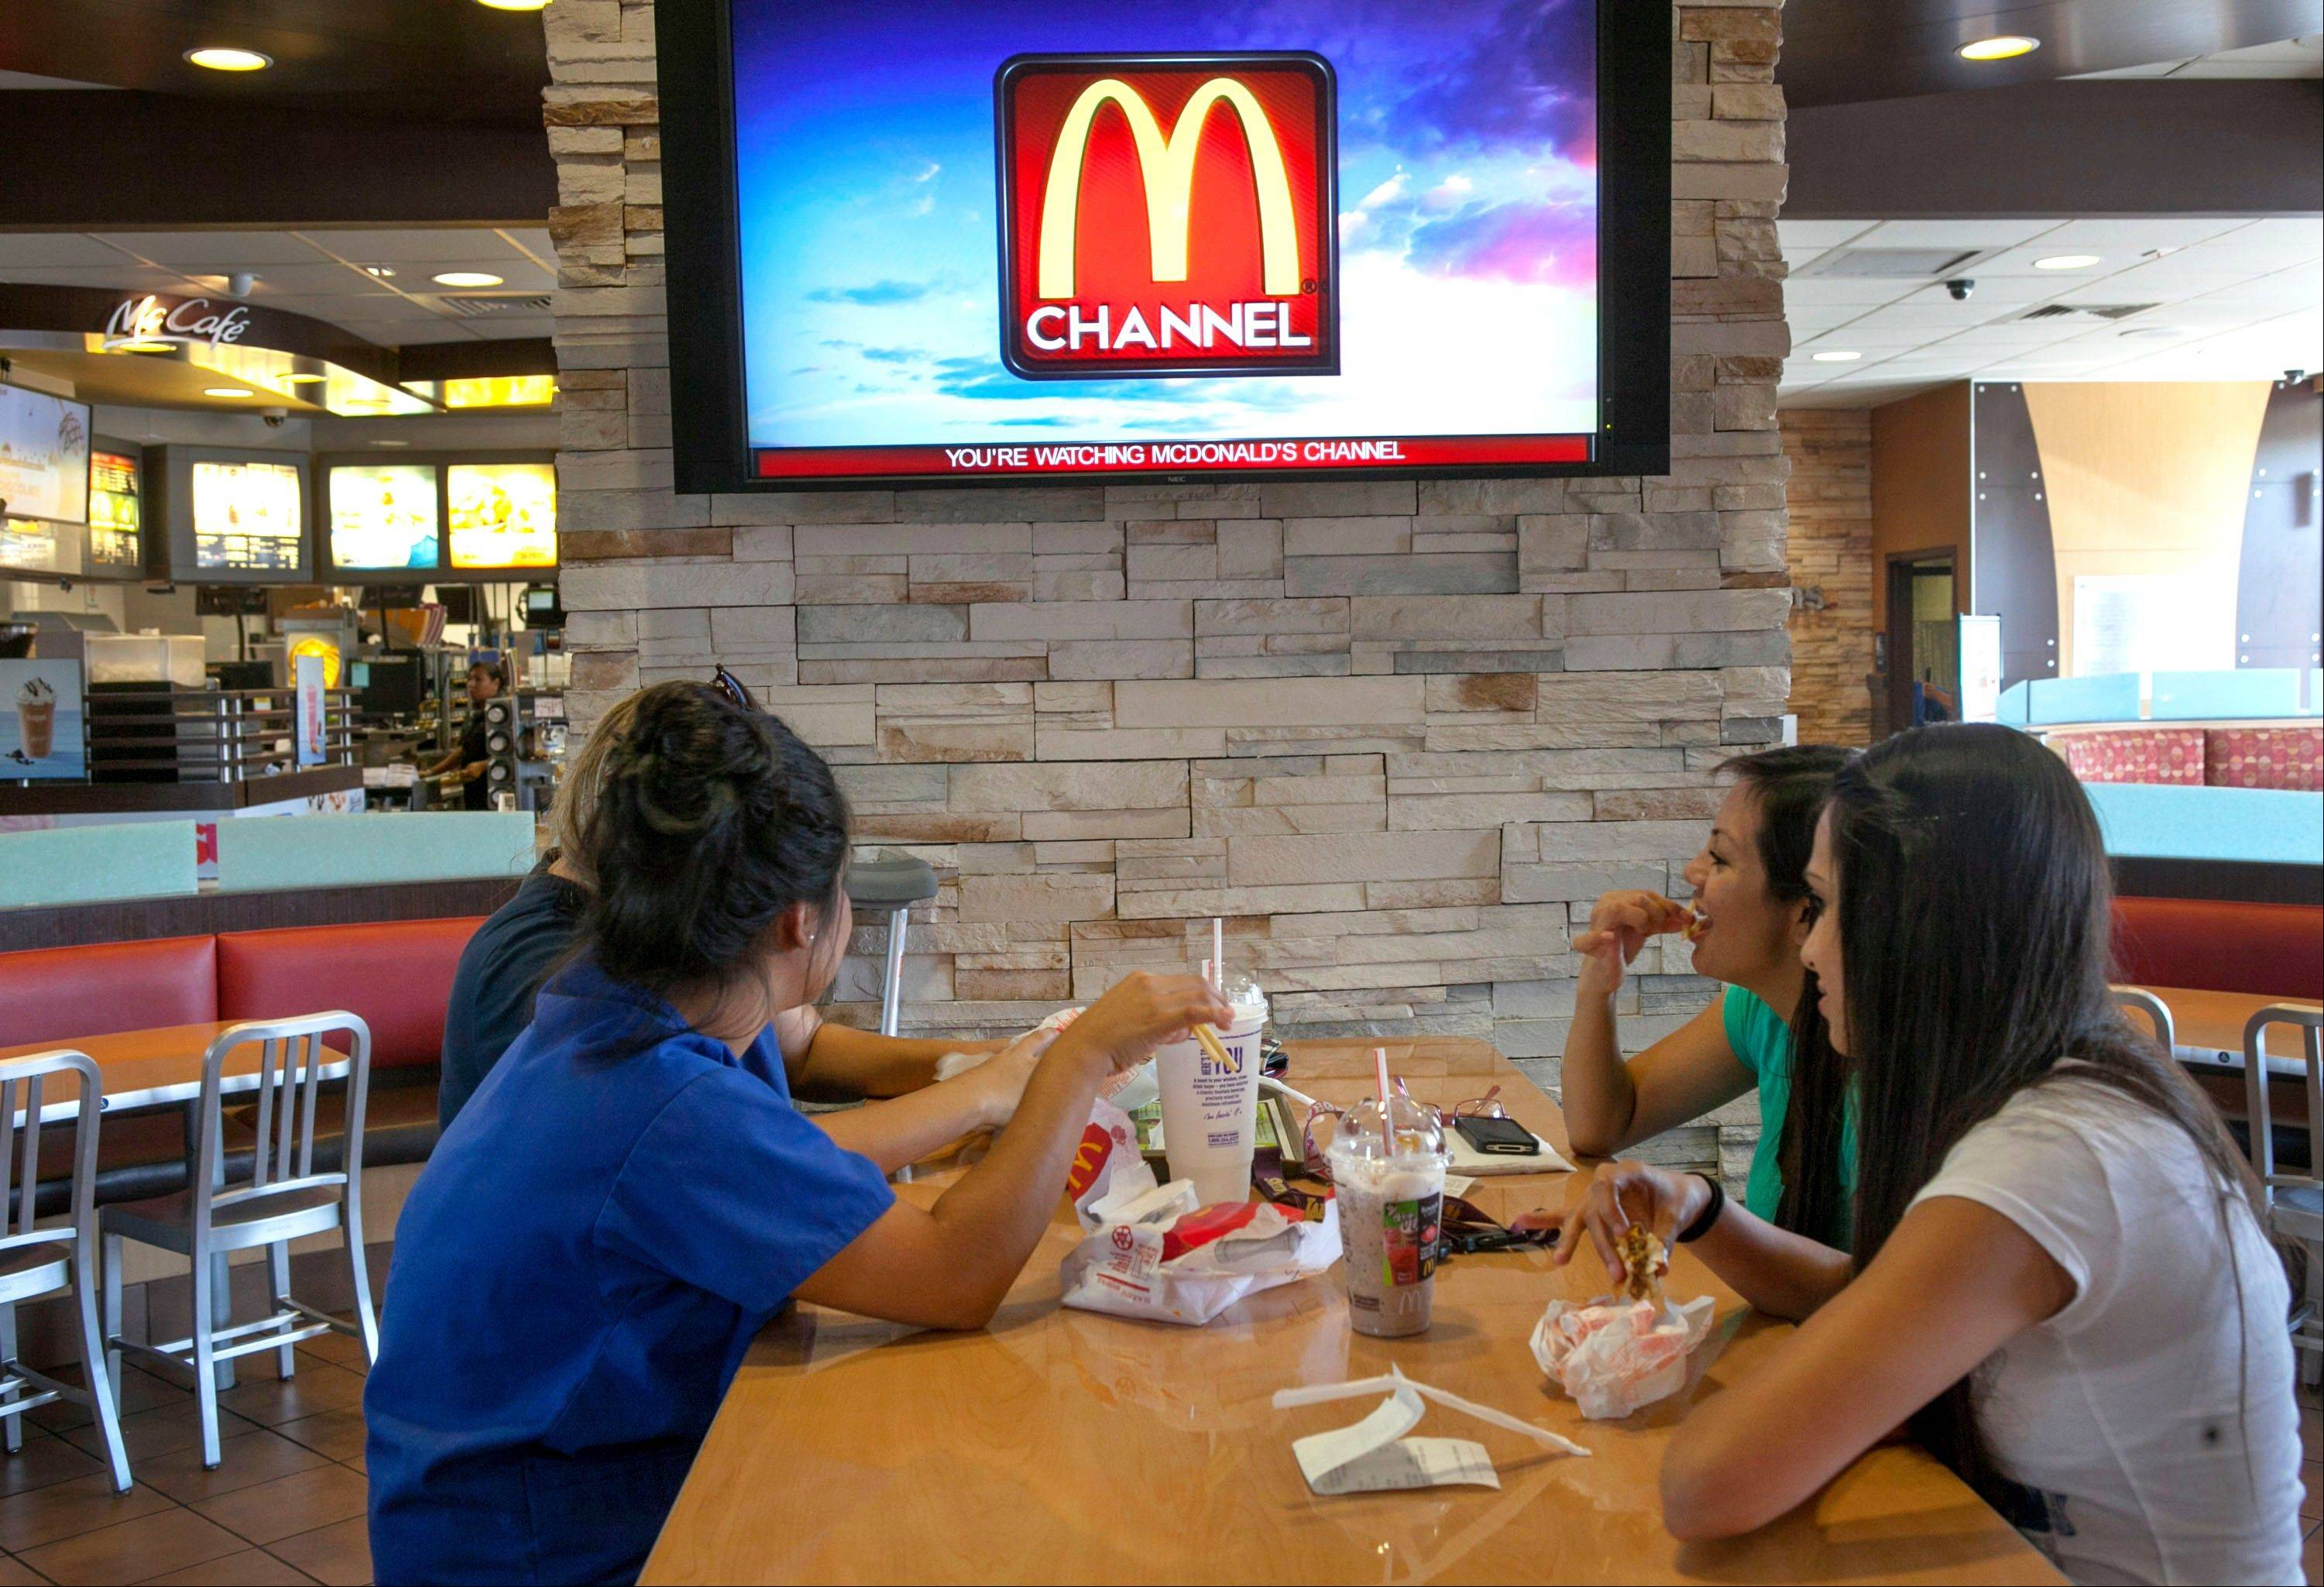 McDonald�s patrons watch the new McDonald�s television channel at a McDonald�s restaurant in Norwalk, Calif. McDonald�s is testing its own TV channel in 700 California restaurants in a pilot project that could expand to all the company�s restaurants.